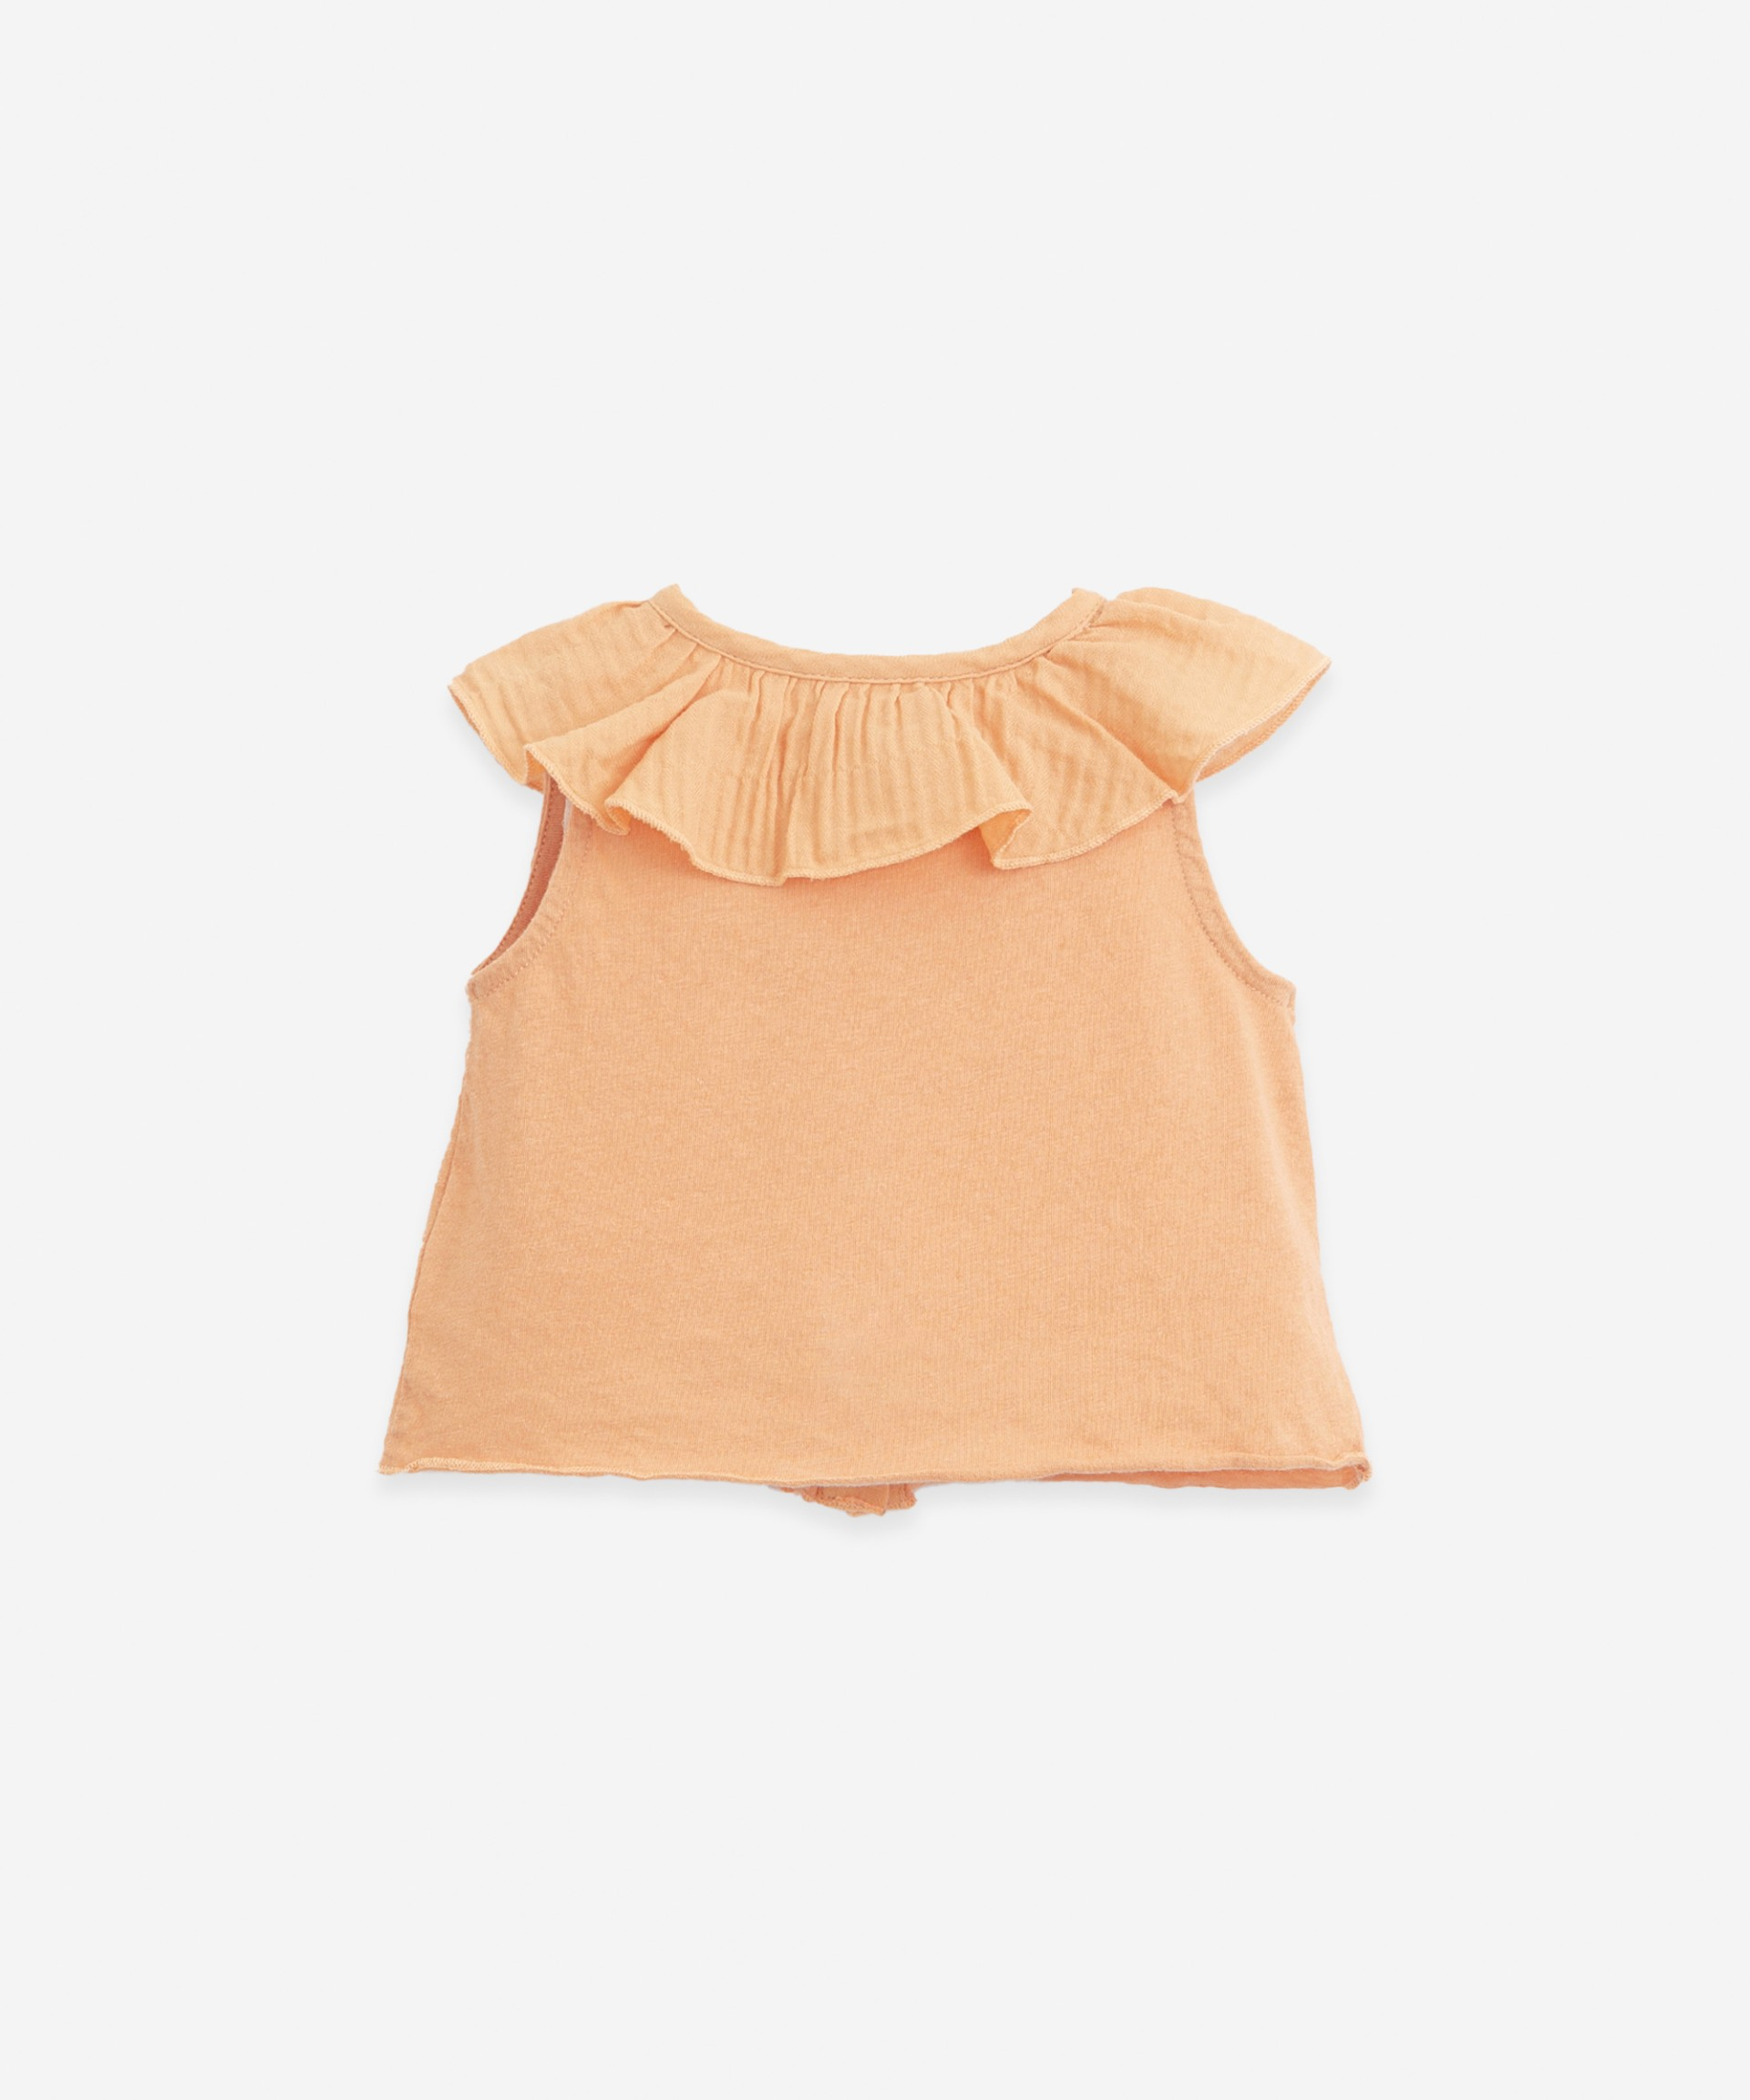 Top with button opening | Botany